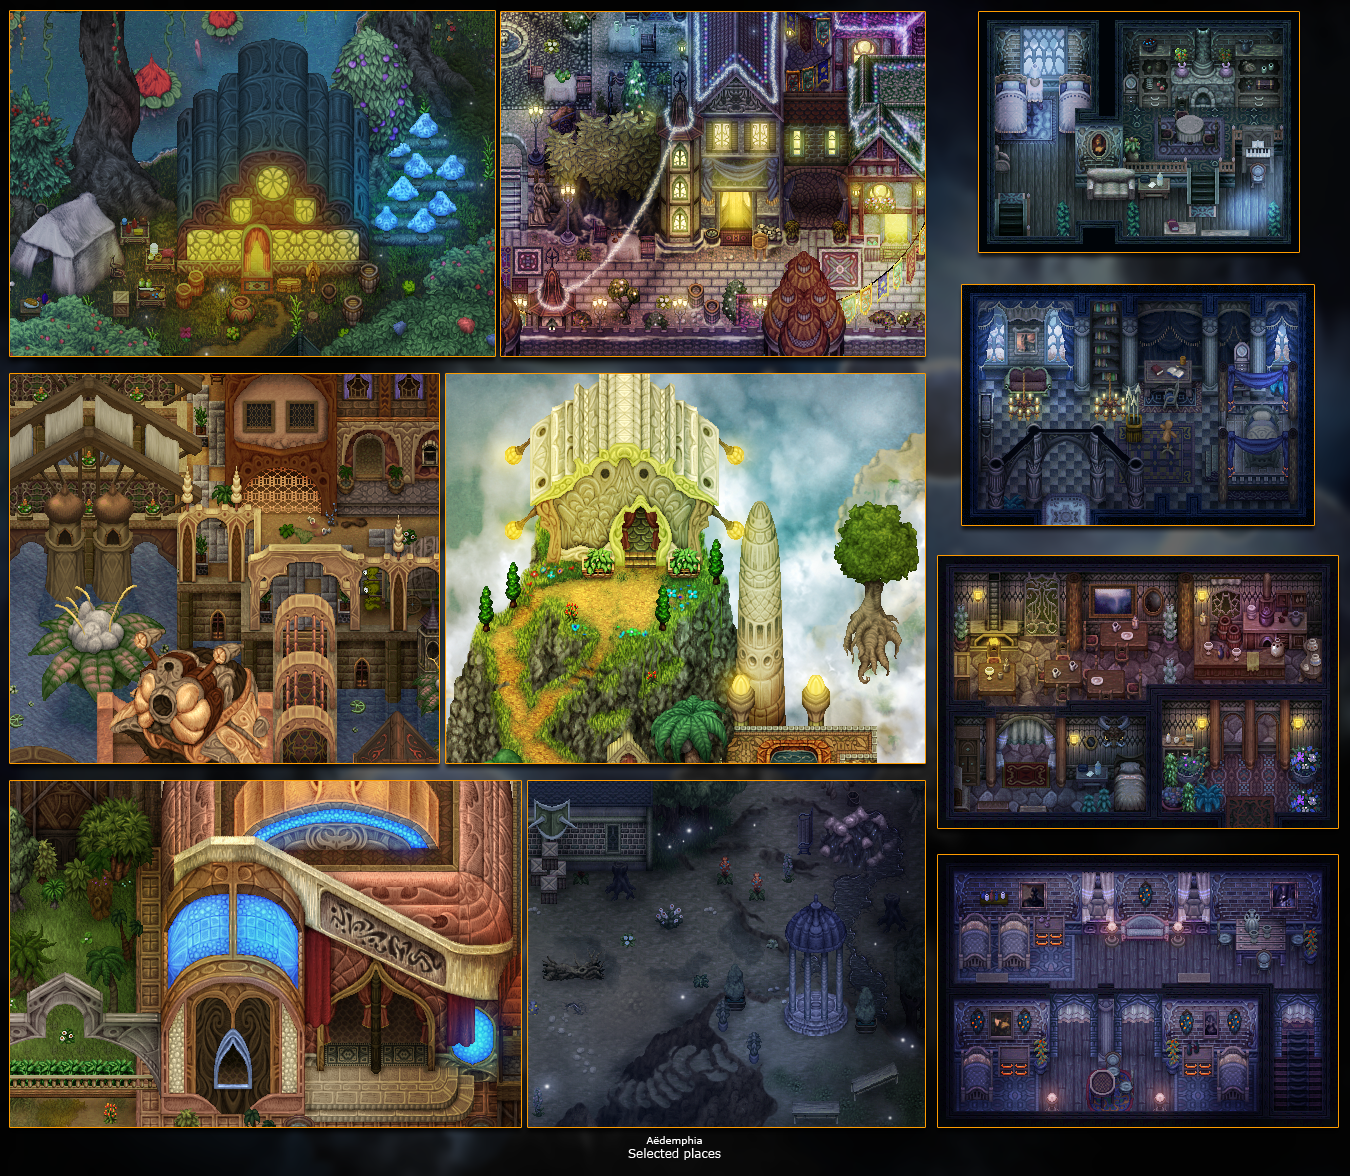 Best Looking RPG Maker Game